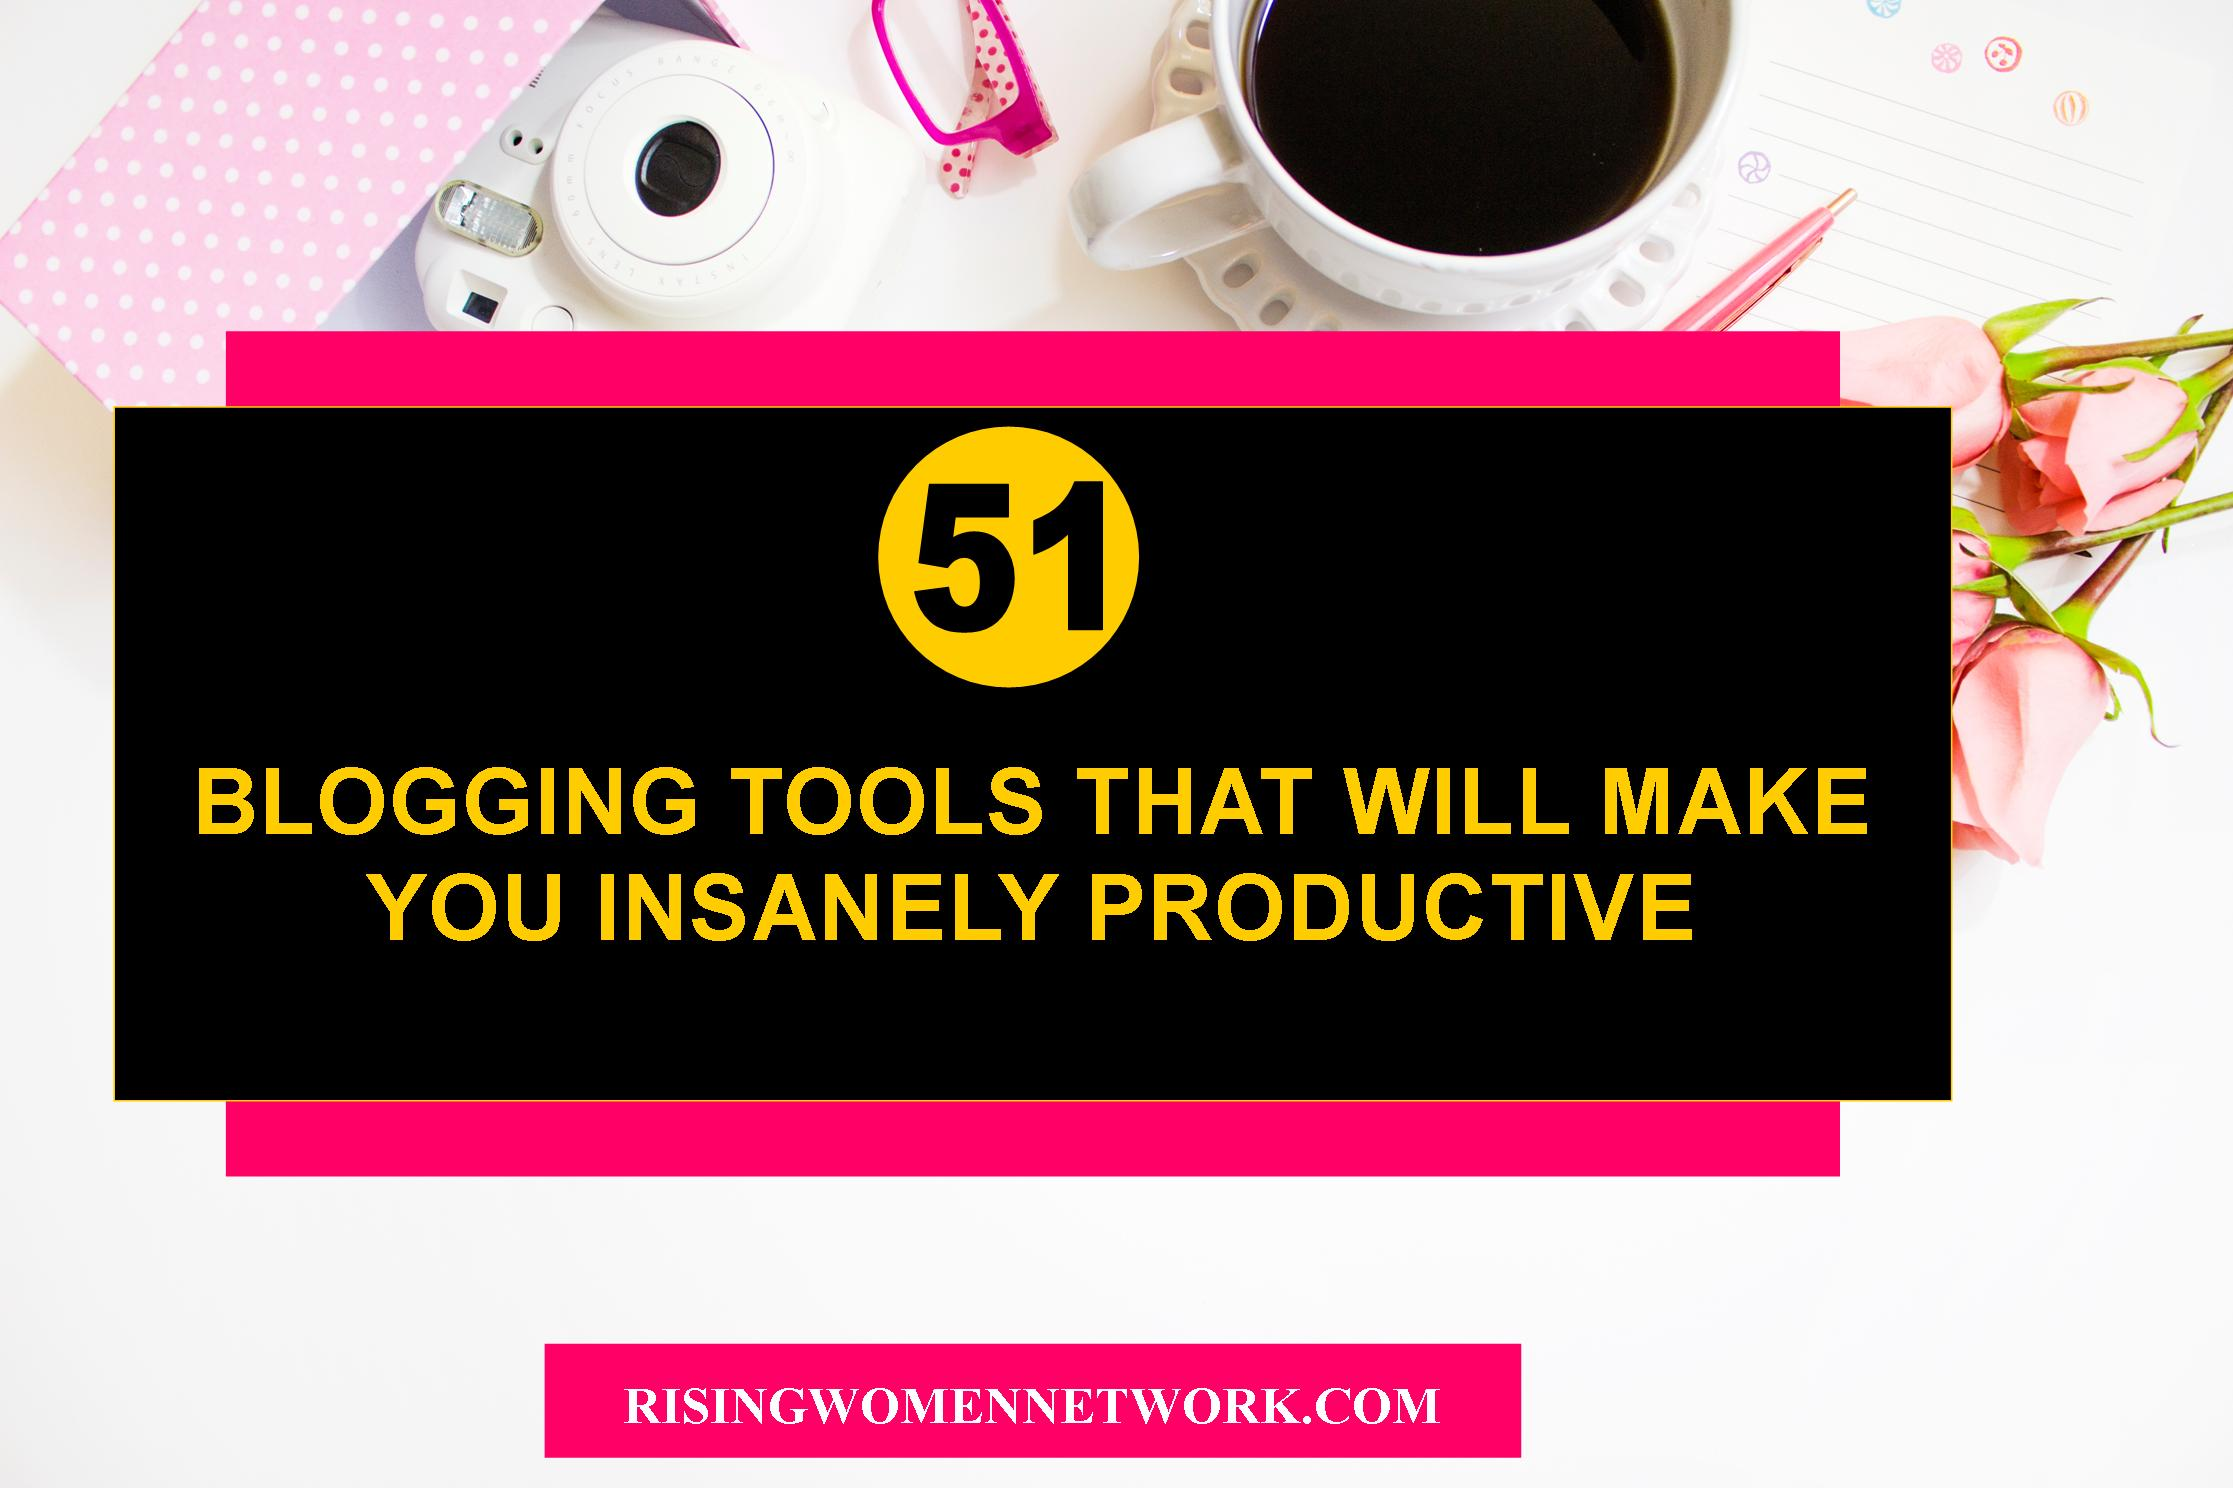 51 Blogging Tools That Will Make You Insanely Productive